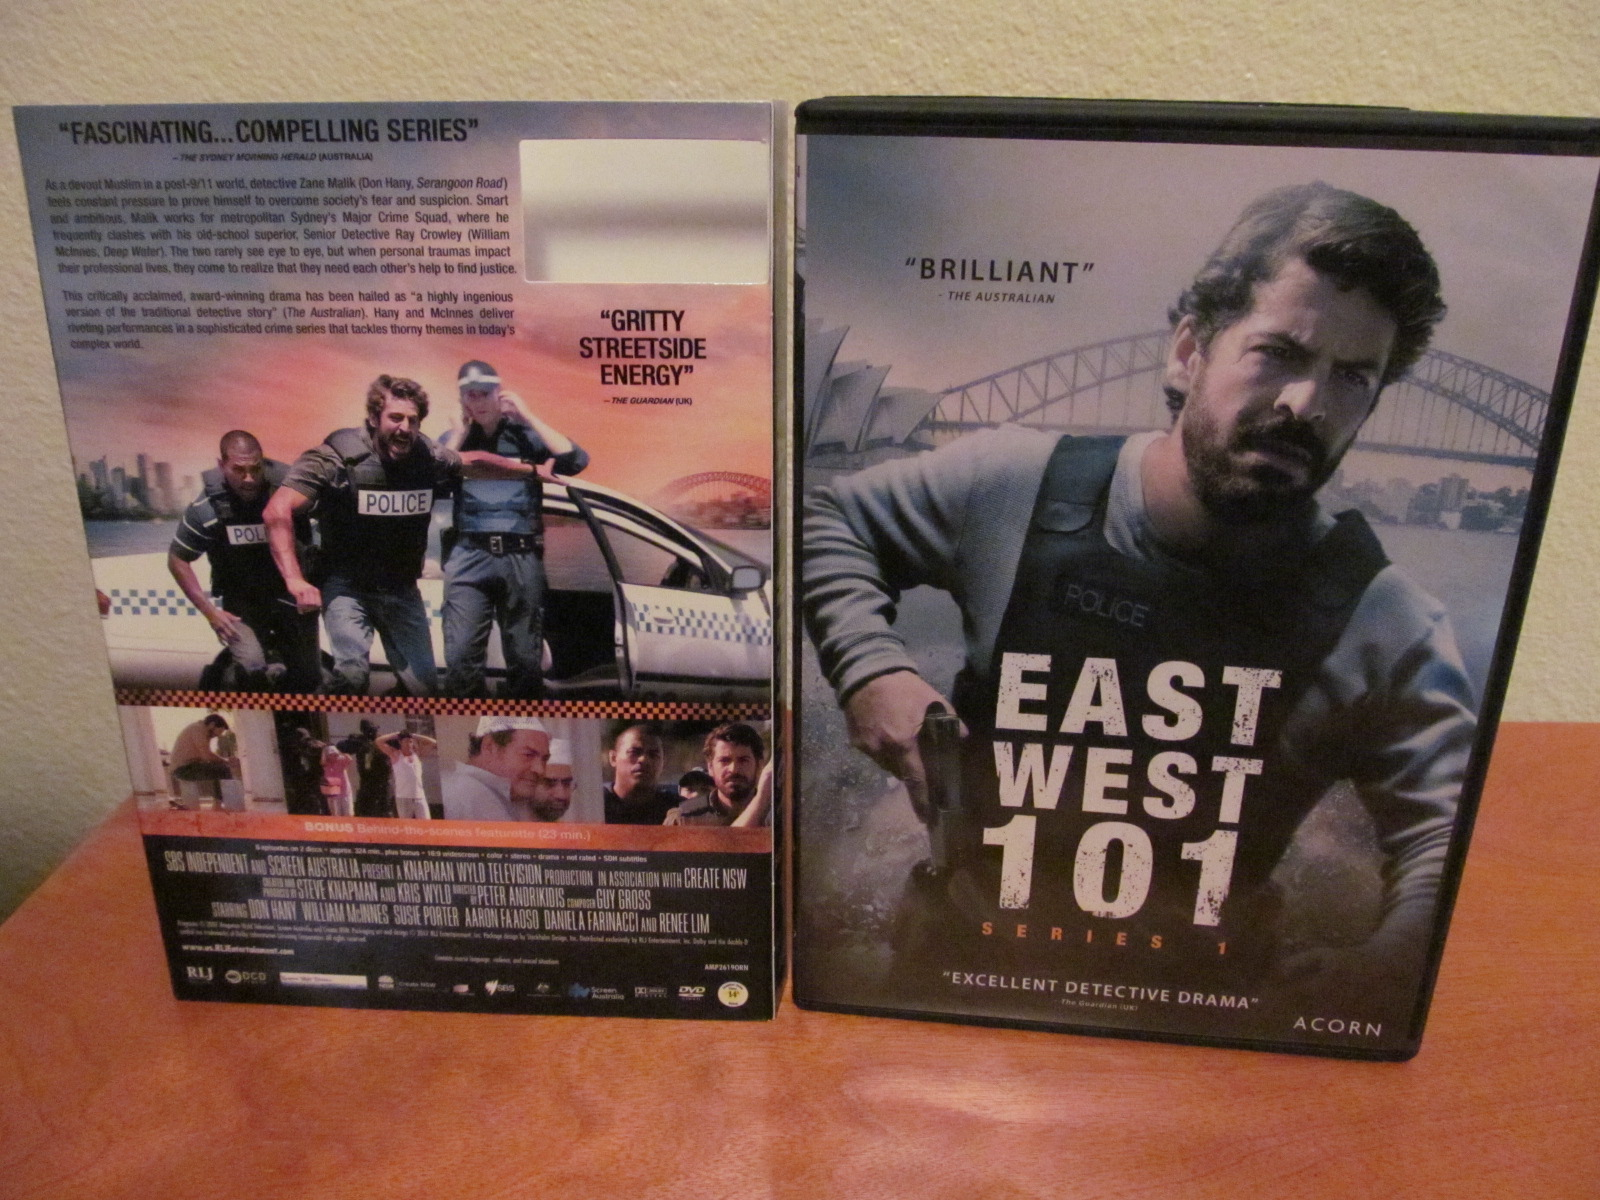 East West 101 Series 1 (2007) Acorn TV DVD Review - The Nerd Mentality